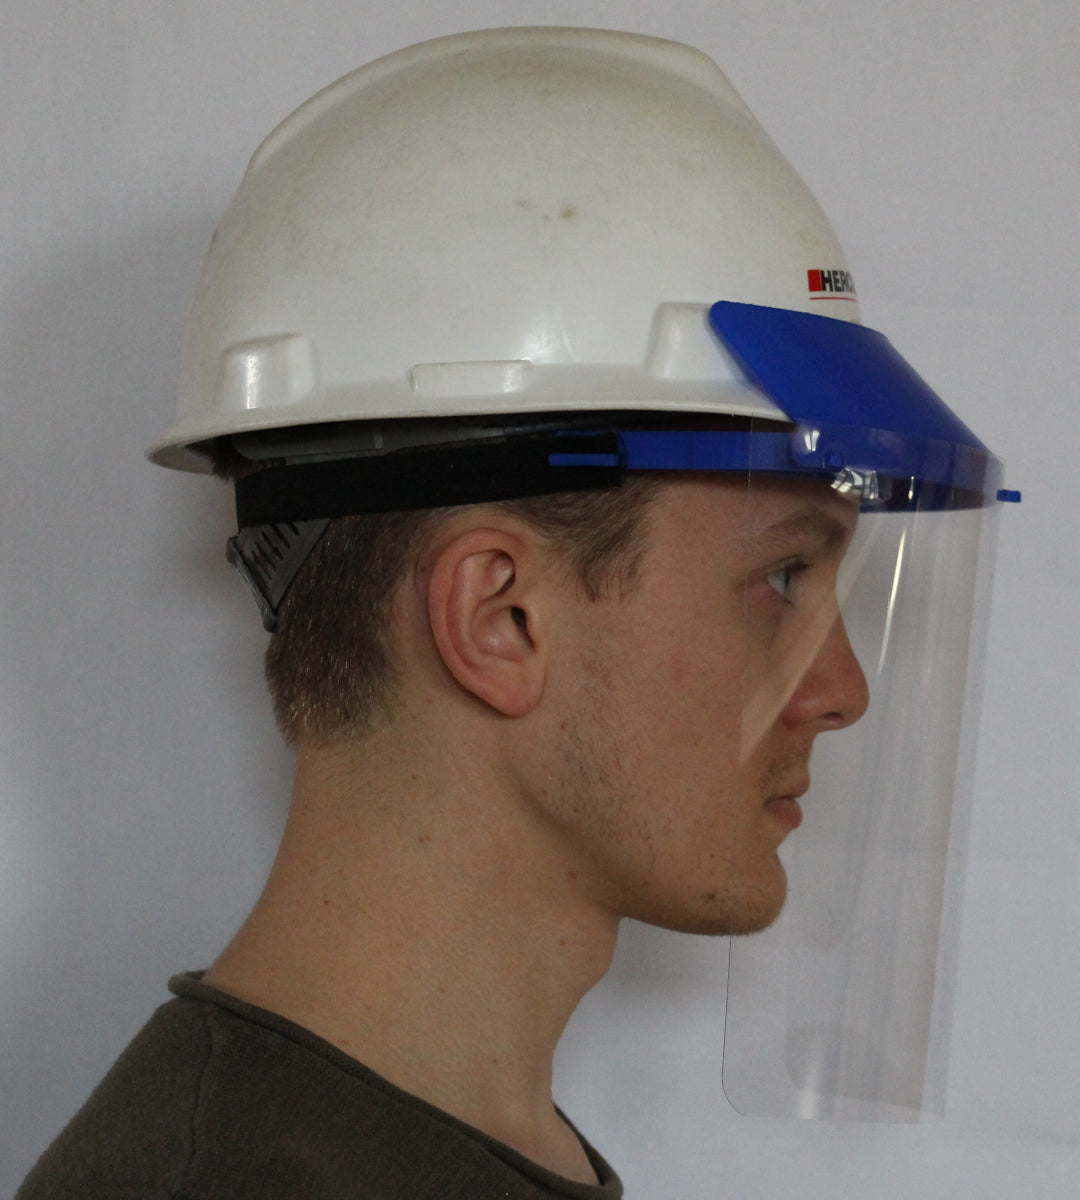 Construction Face Shield by Atra